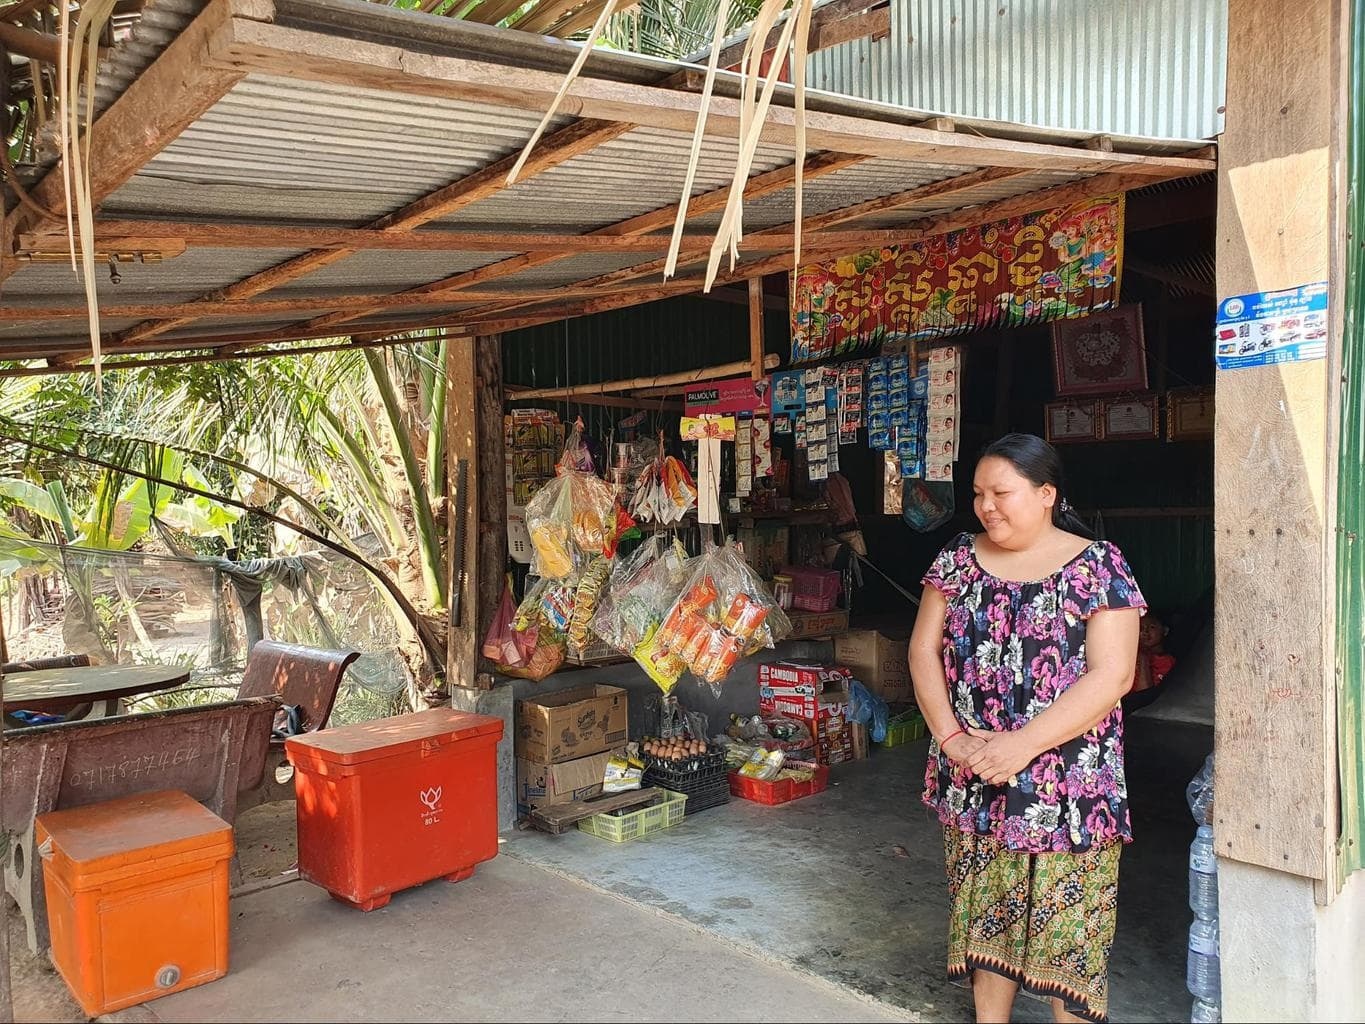 One of the micro-loans given to start a grocery store